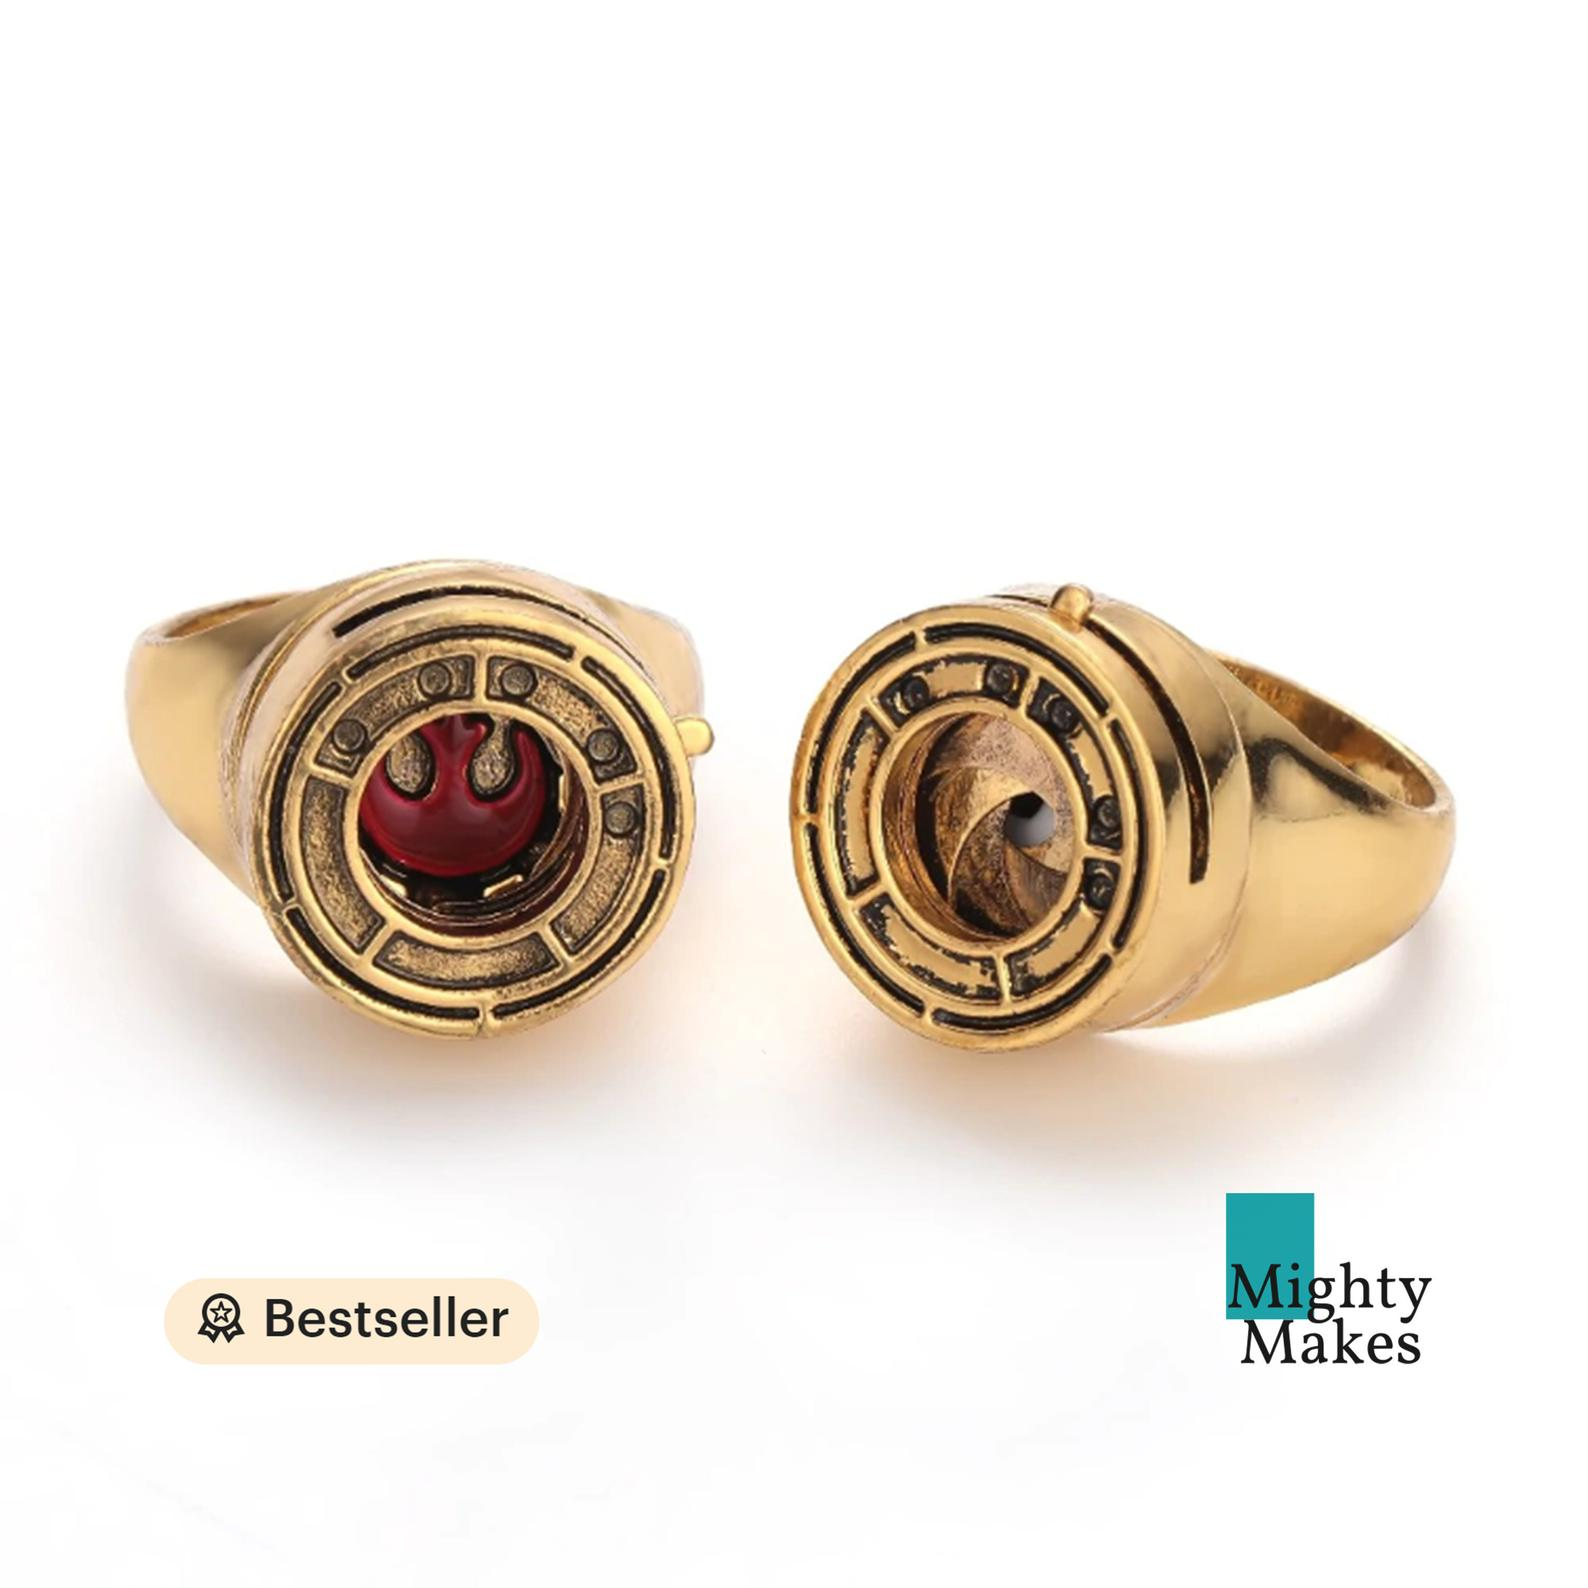 [Image description: a two image view of a gold replica Resistance ring]